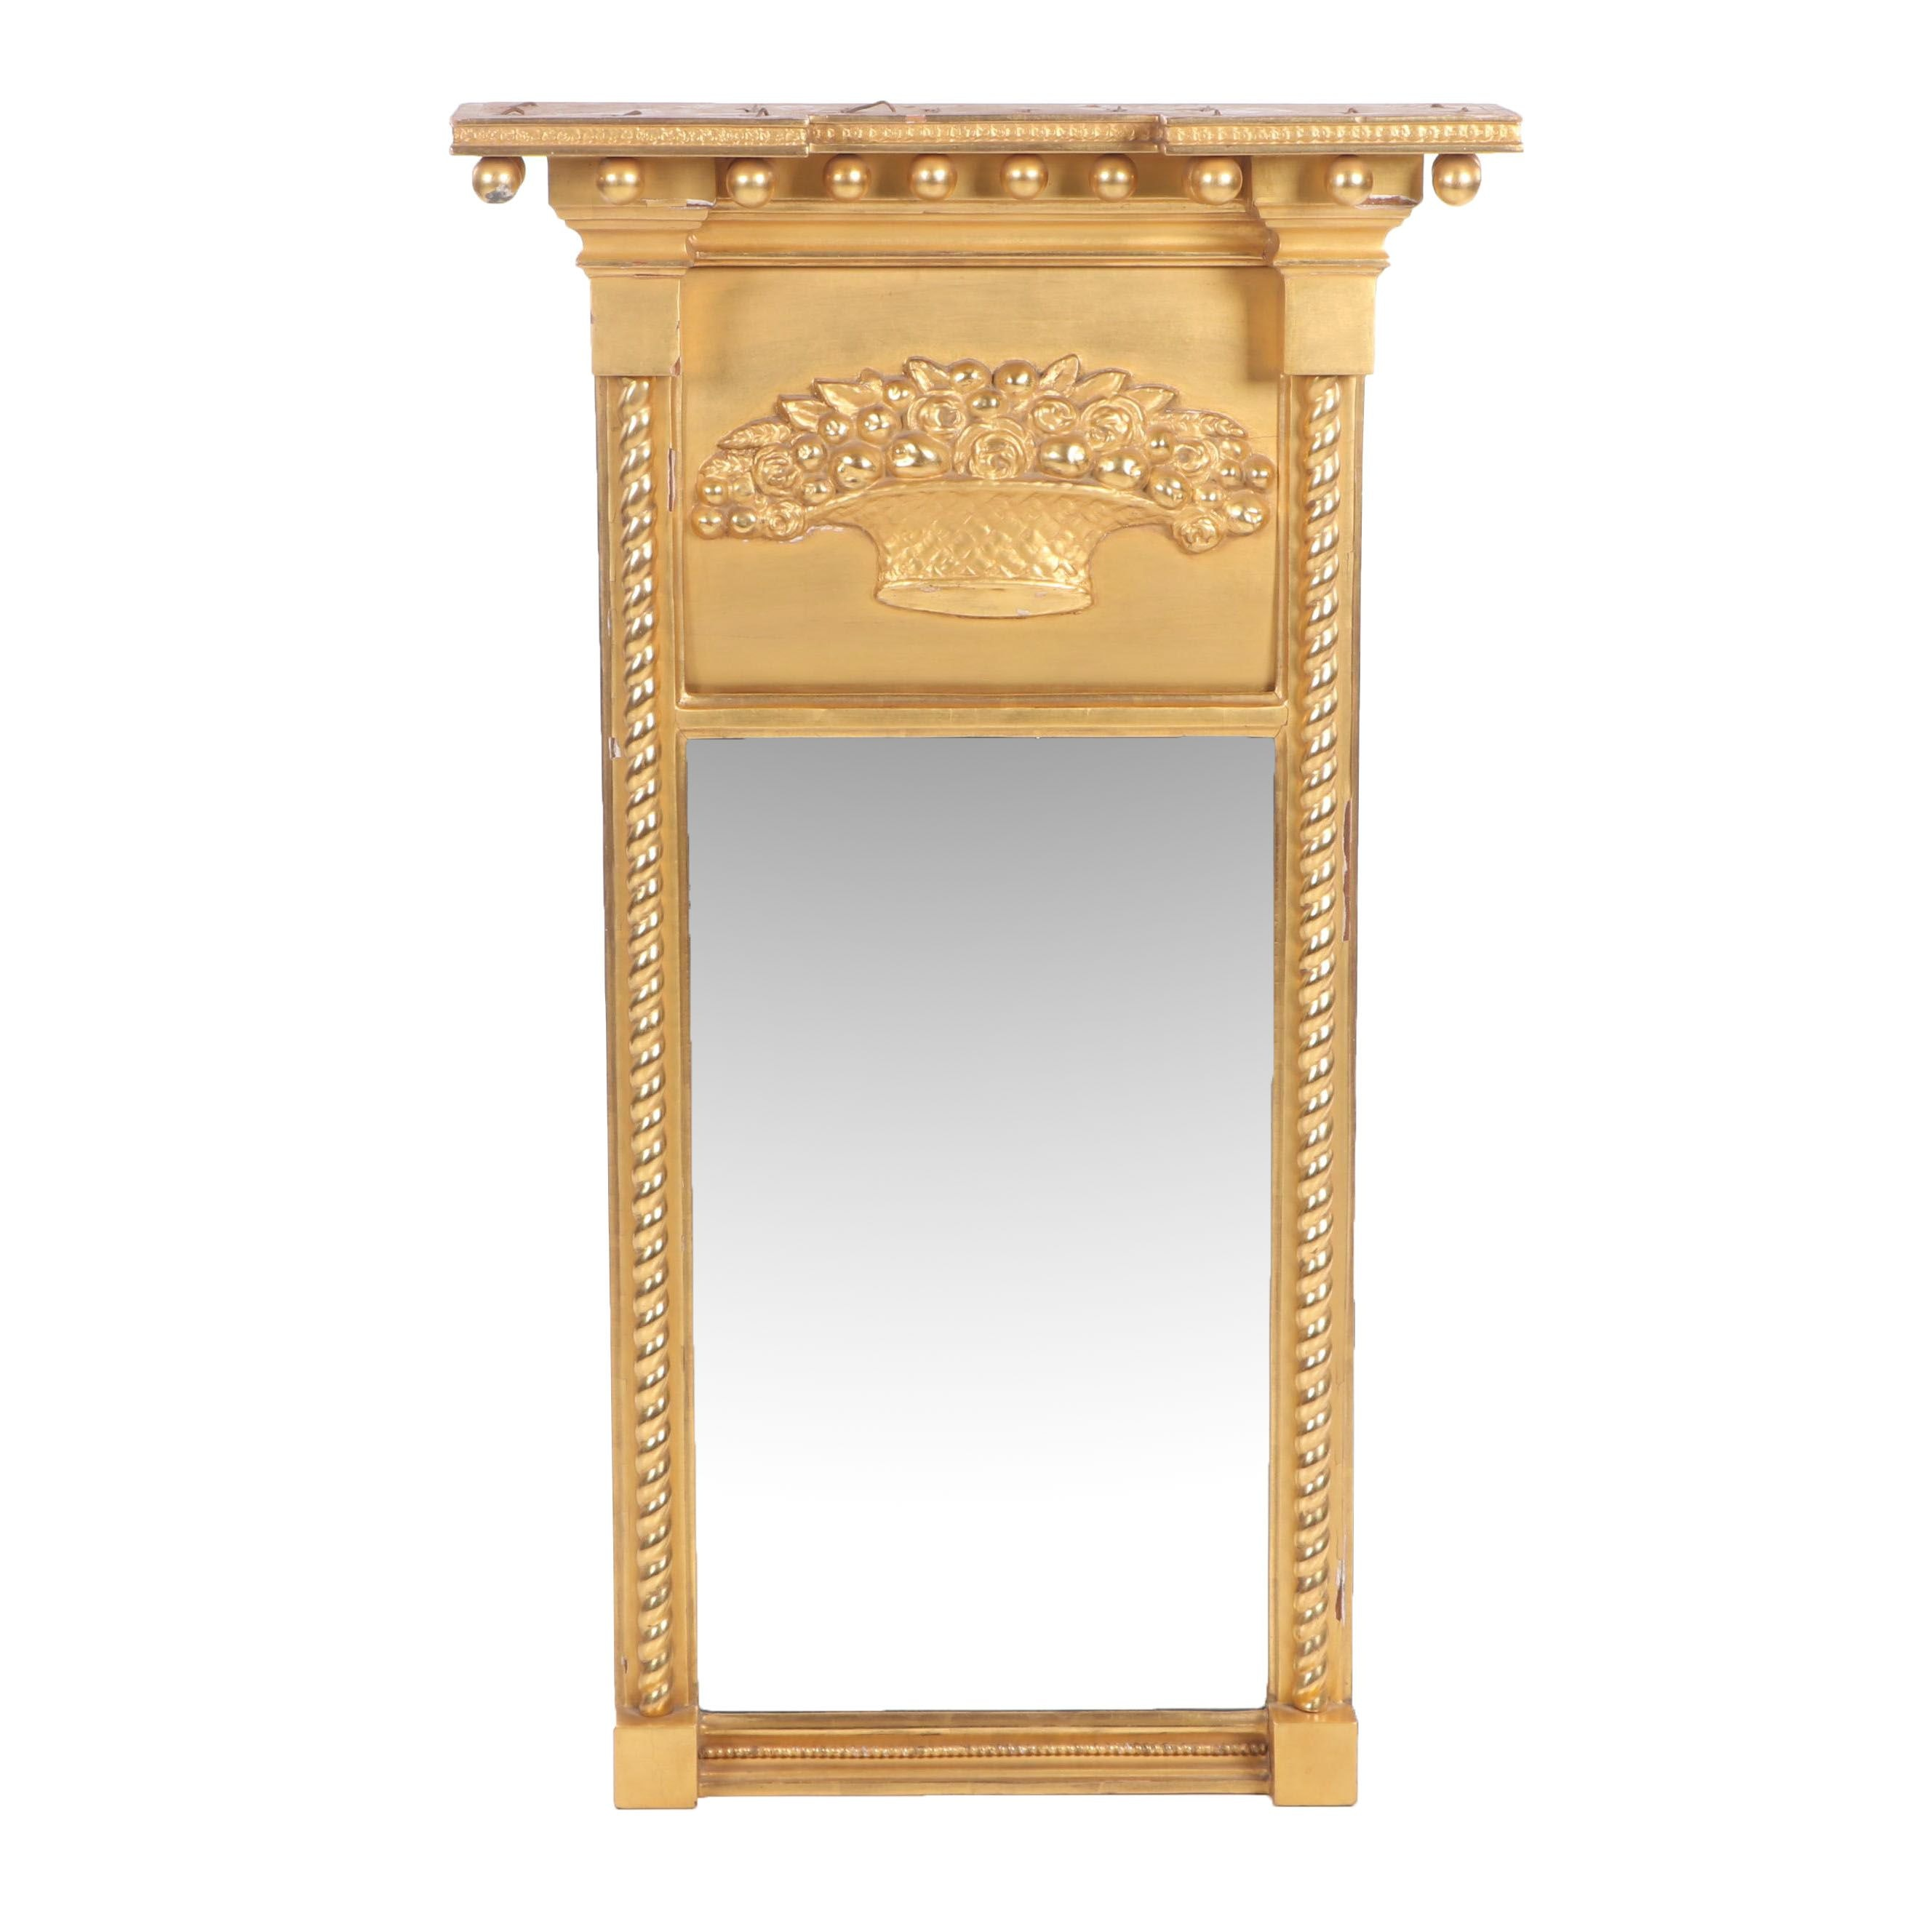 Federal Gilt Tabernacle Mirror, Massachusetts, Early 19th Century